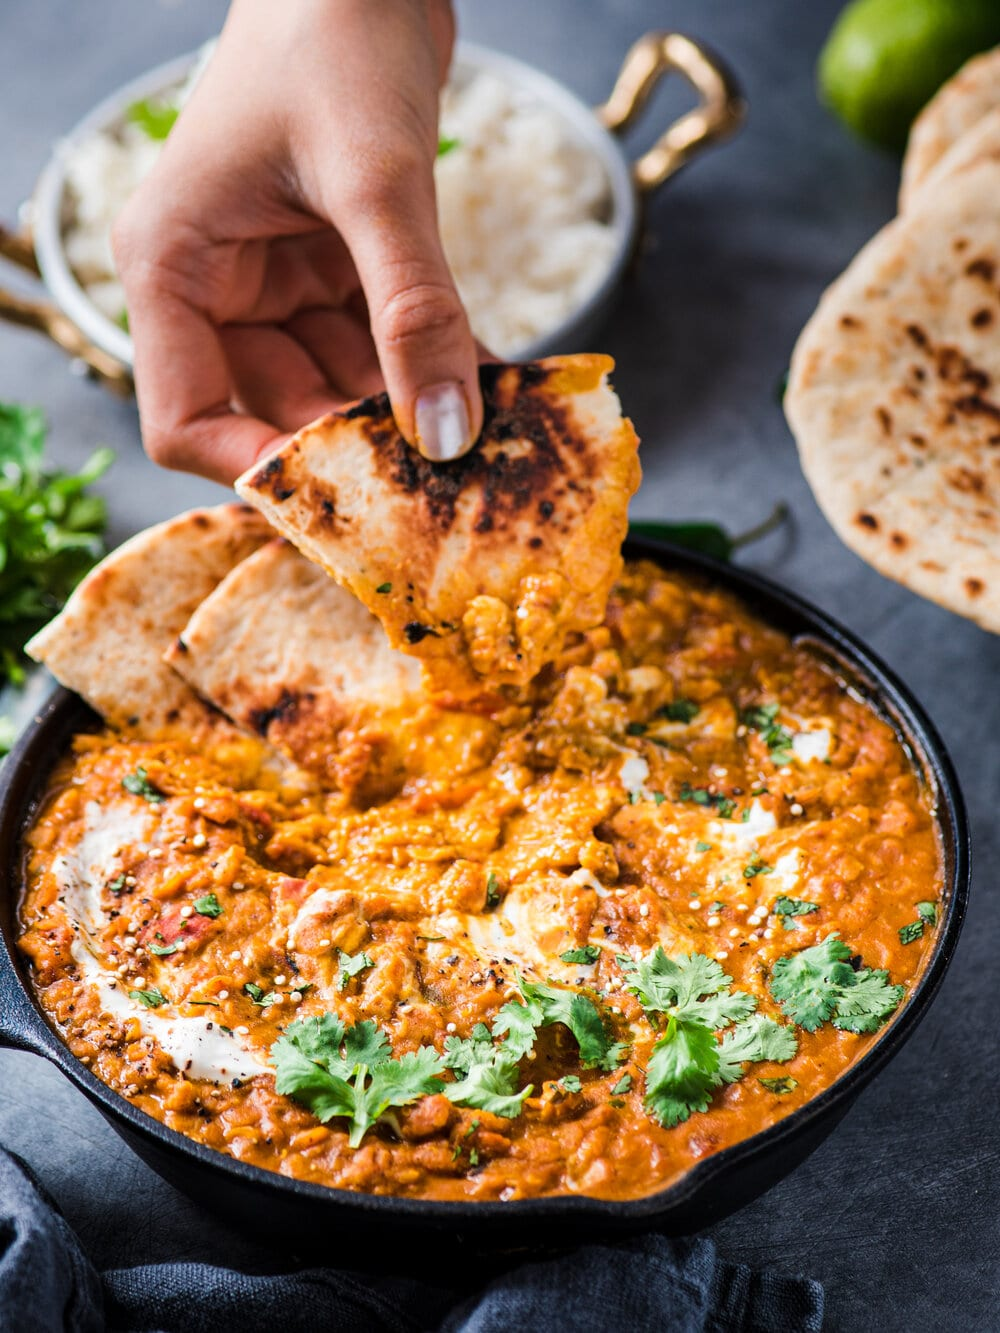 hand dipping naan bread into red lentil curry